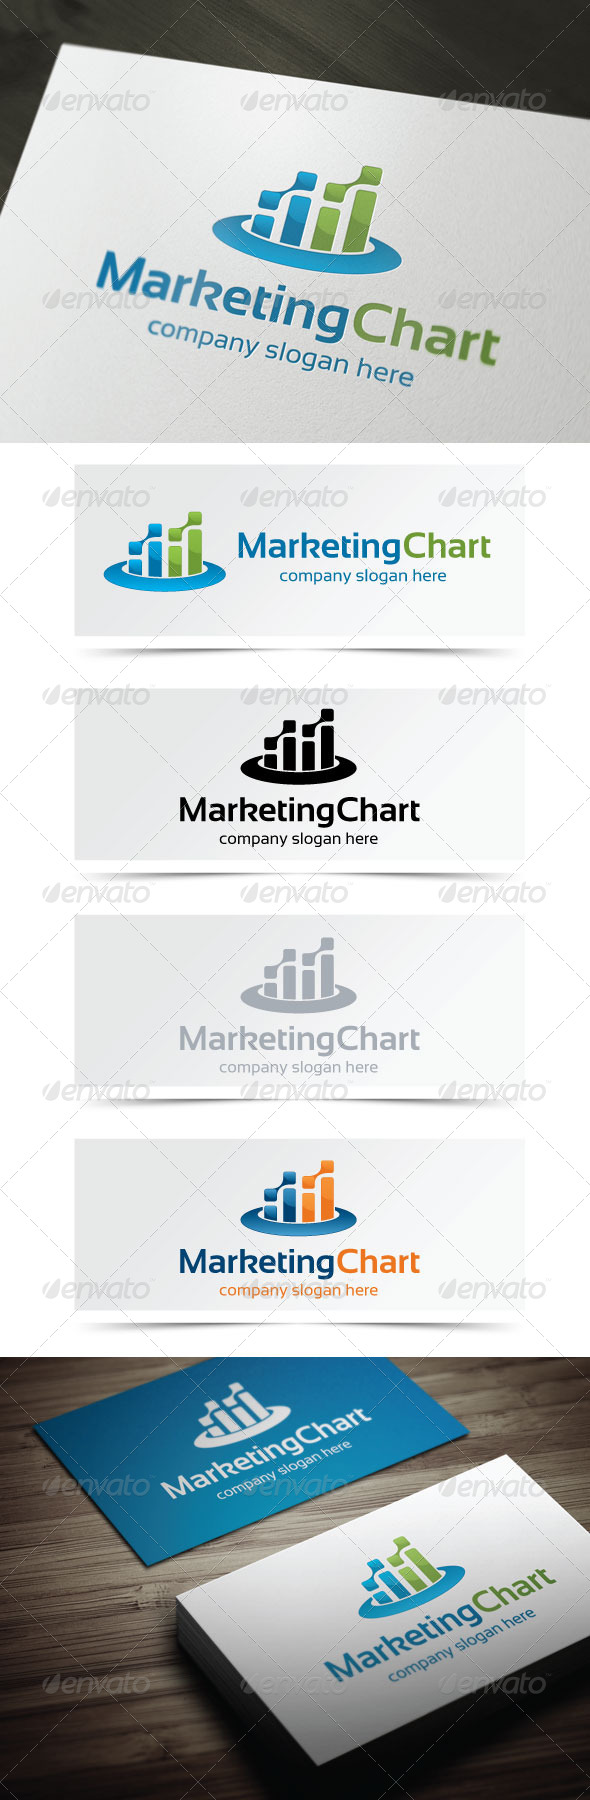 GraphicRiver Marketing Chart 5054675